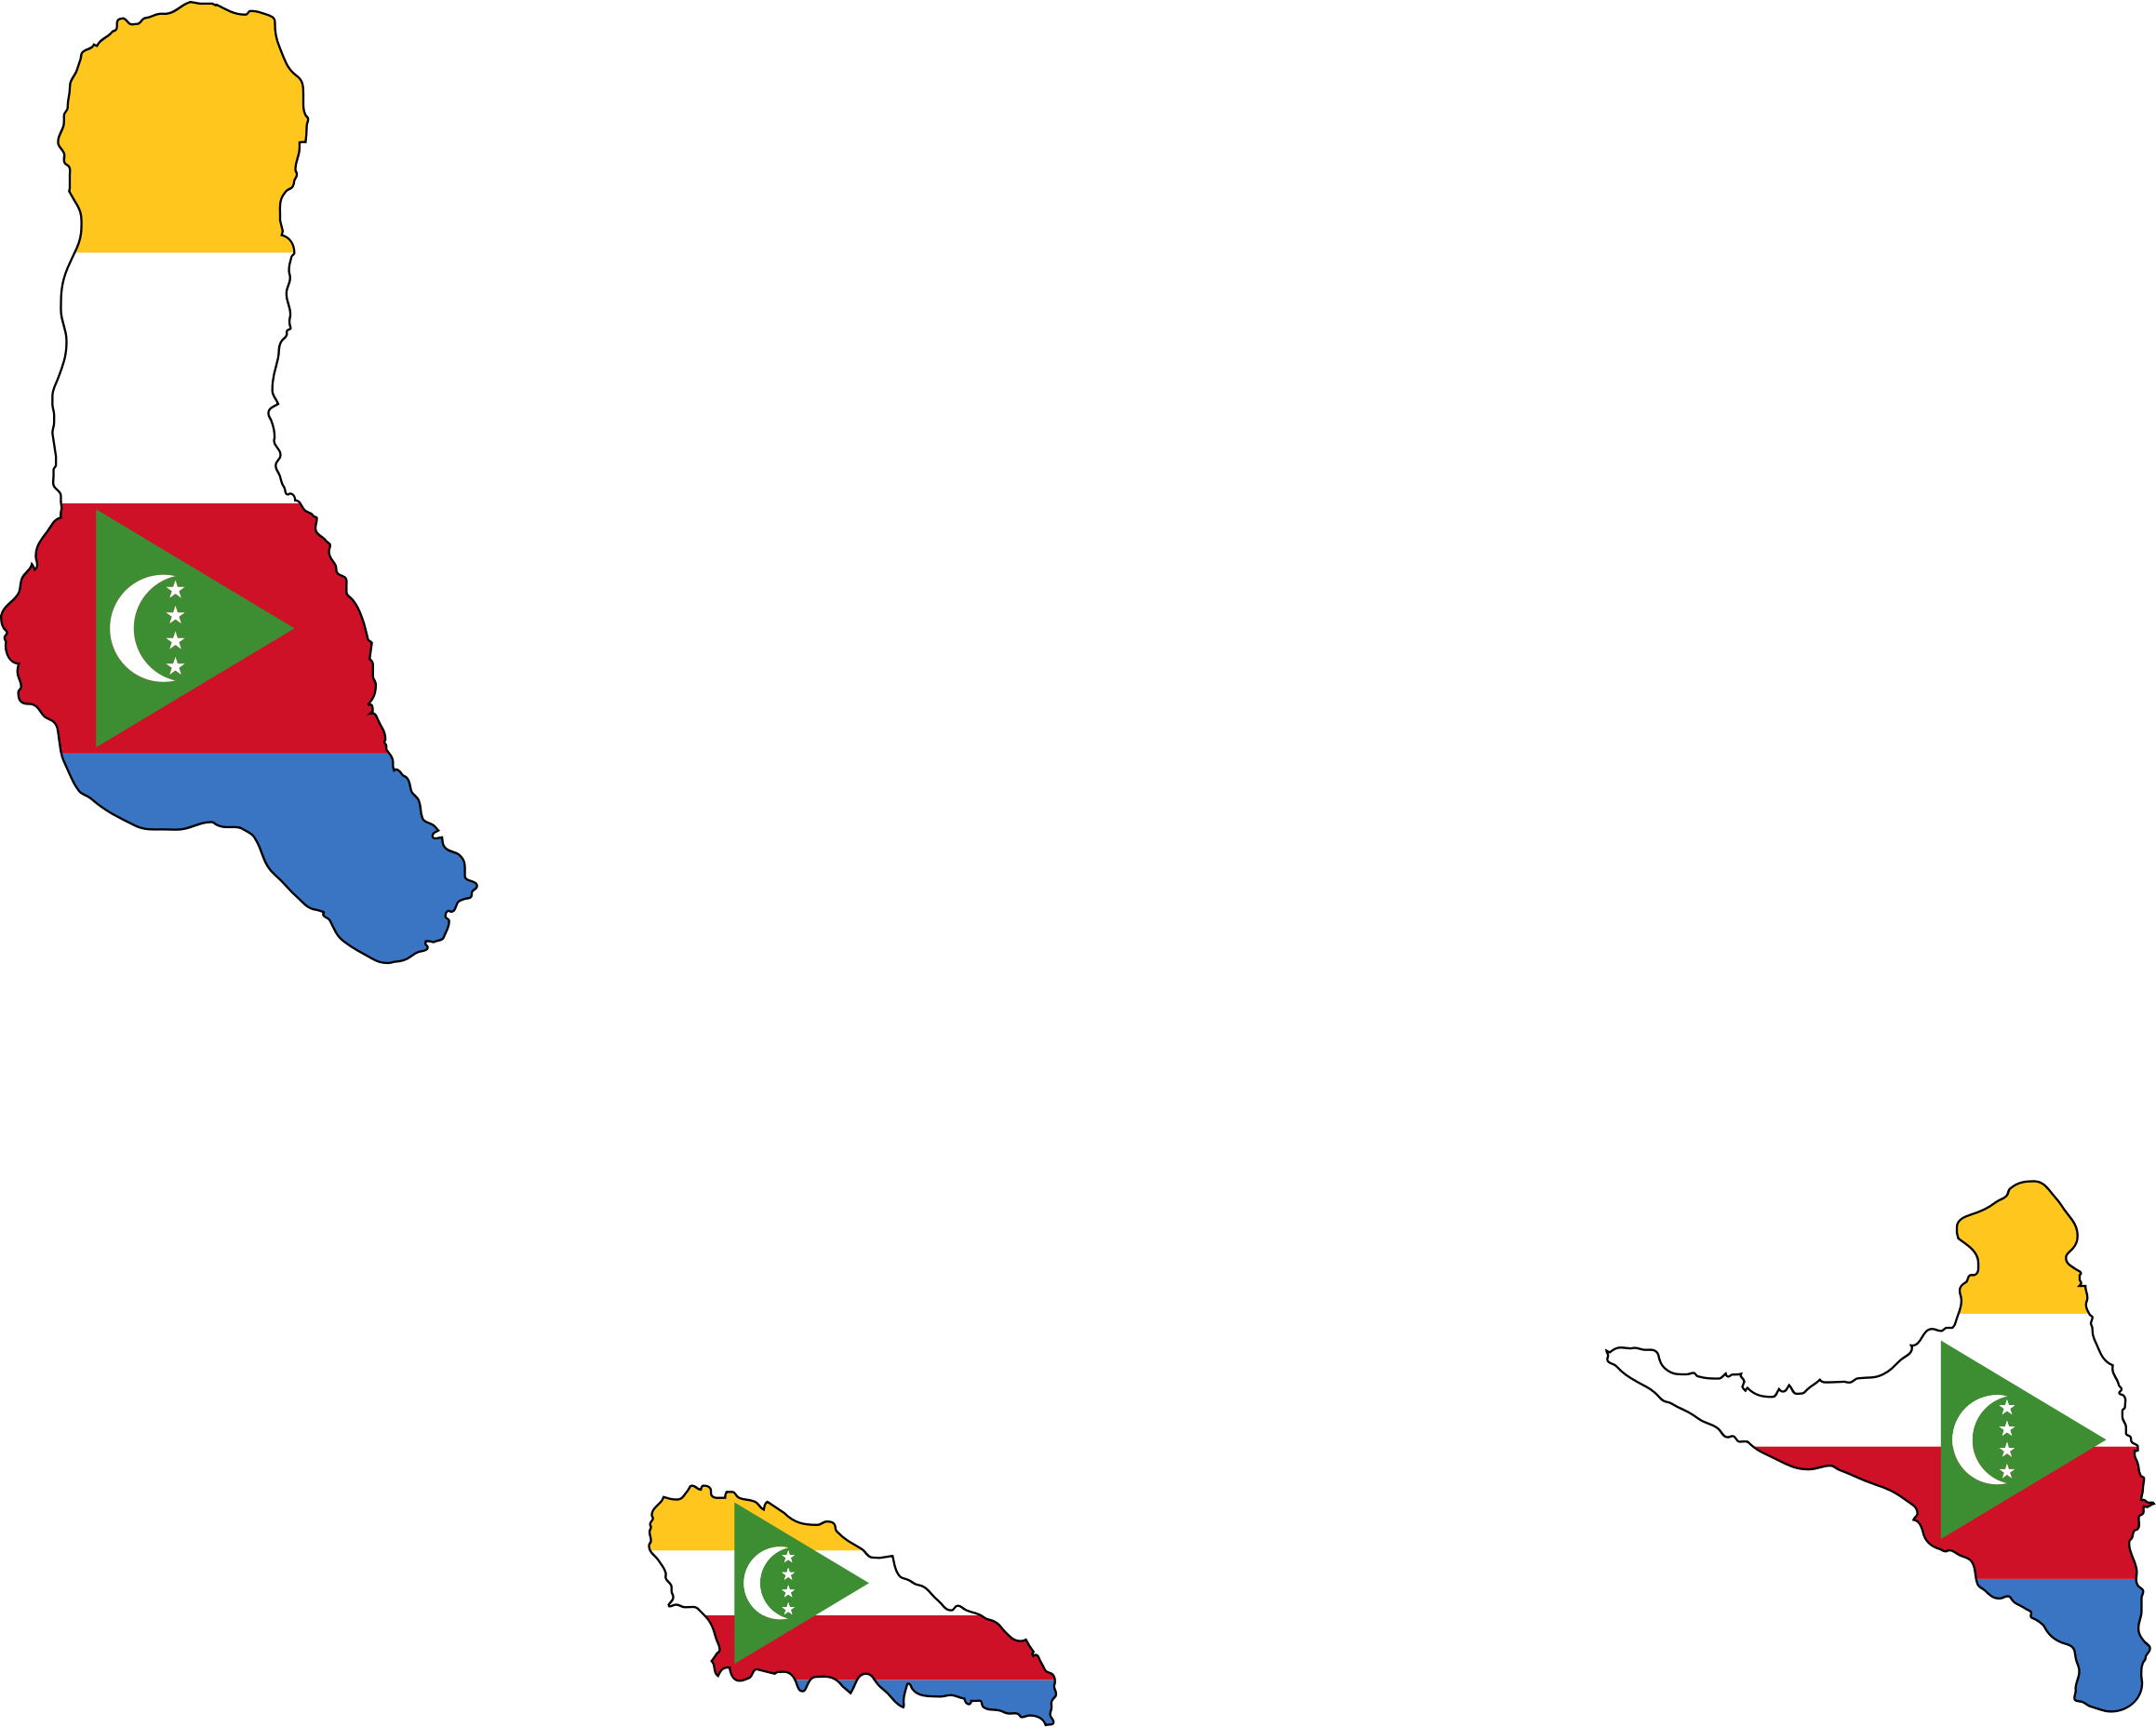 Comoros Flag Map With Stroke by GDJ